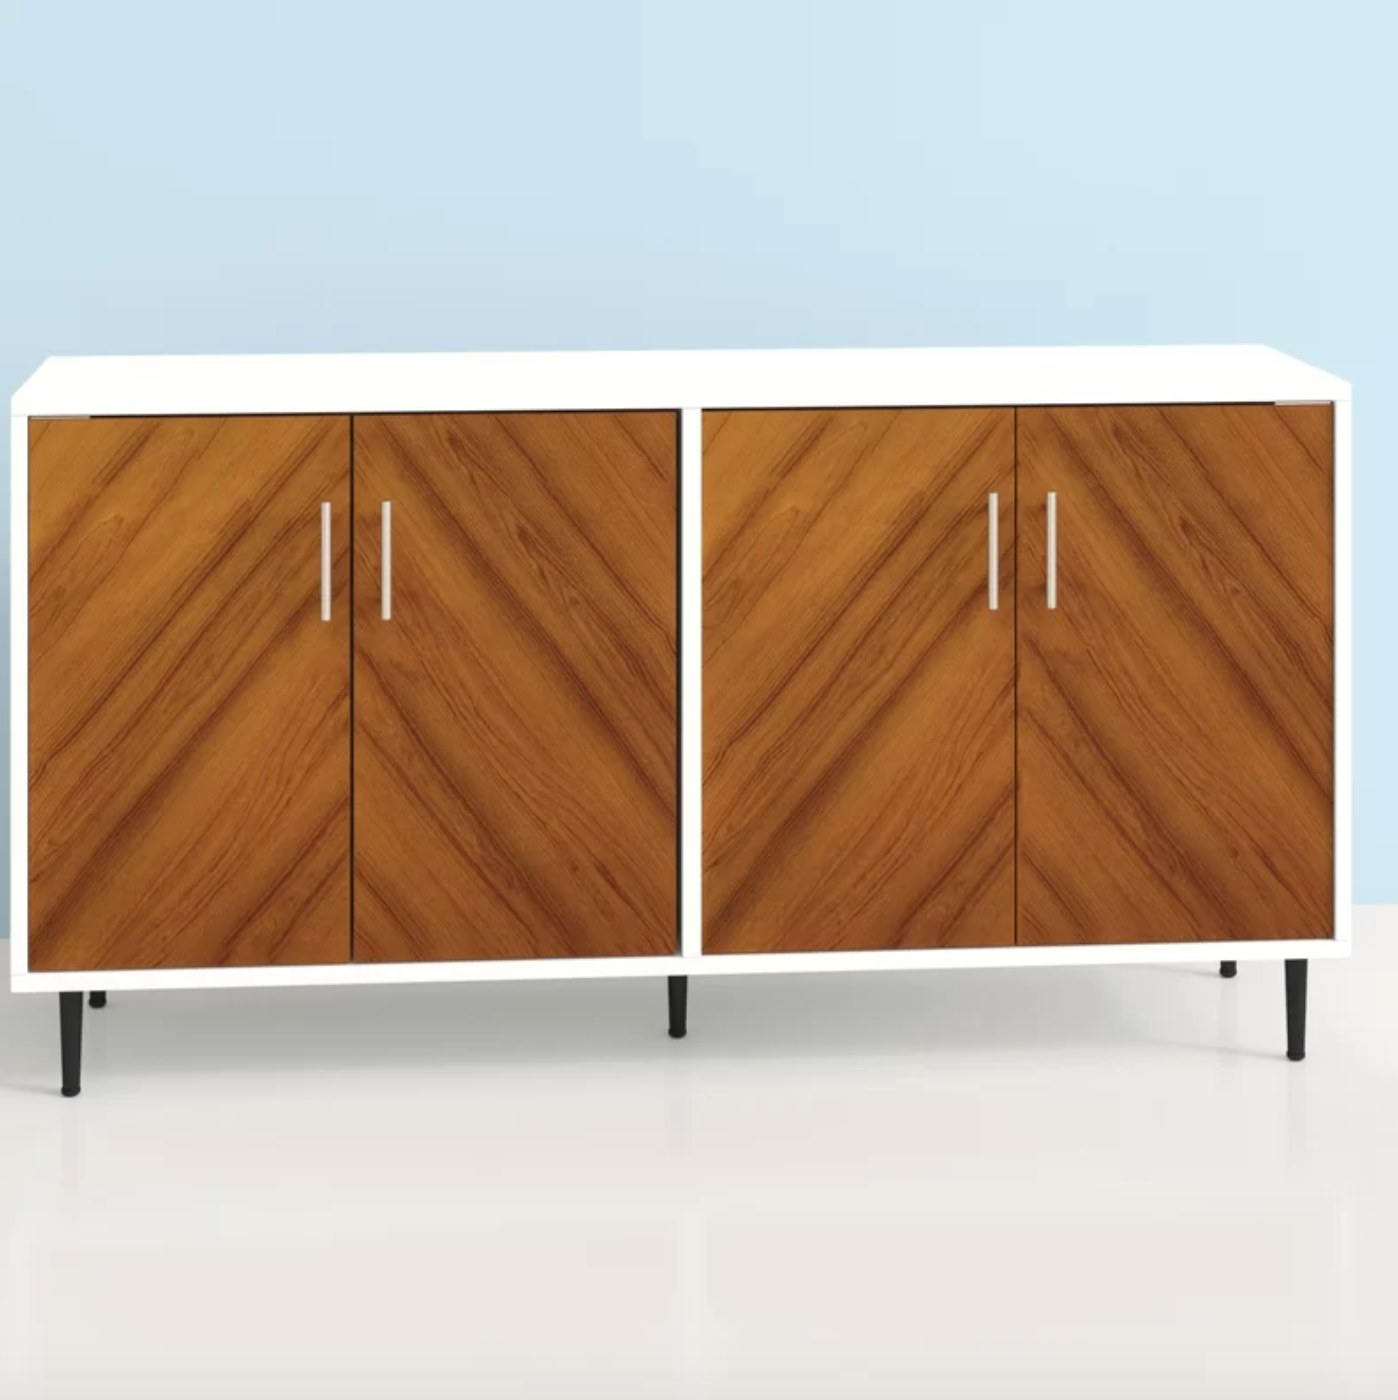 The wide sideboard in wood